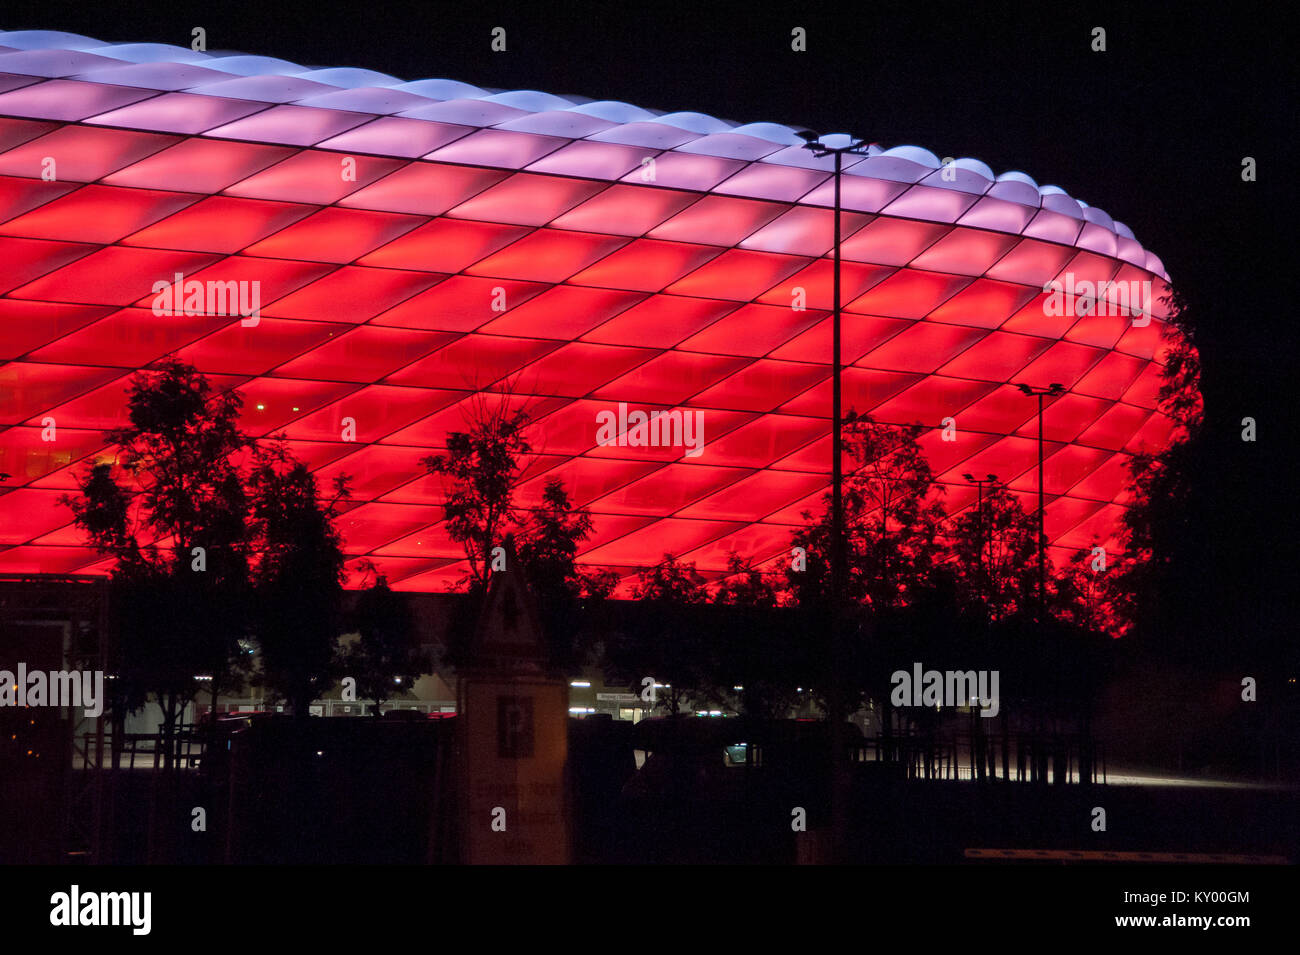 e7db5fda5 Bayern Munich Team Stock Photos   Bayern Munich Team Stock Images ...